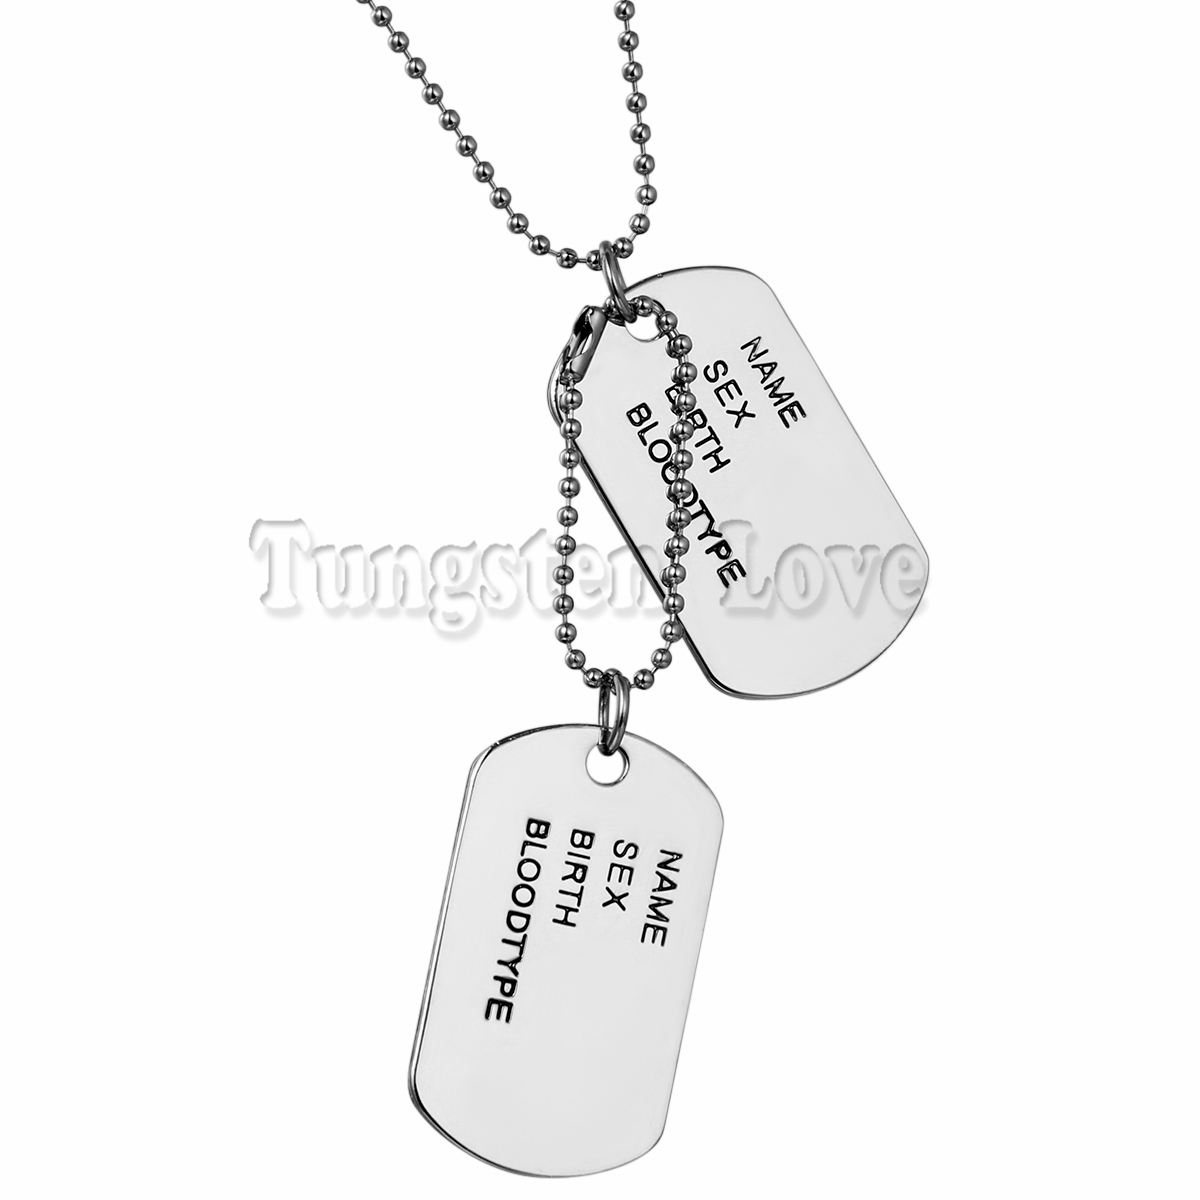 Military Army Style Silver 2 Dog Tags Chain Mens Pendant Necklace Jewelry Accessories 70cm long Chain collares hombres(China (Mainland))